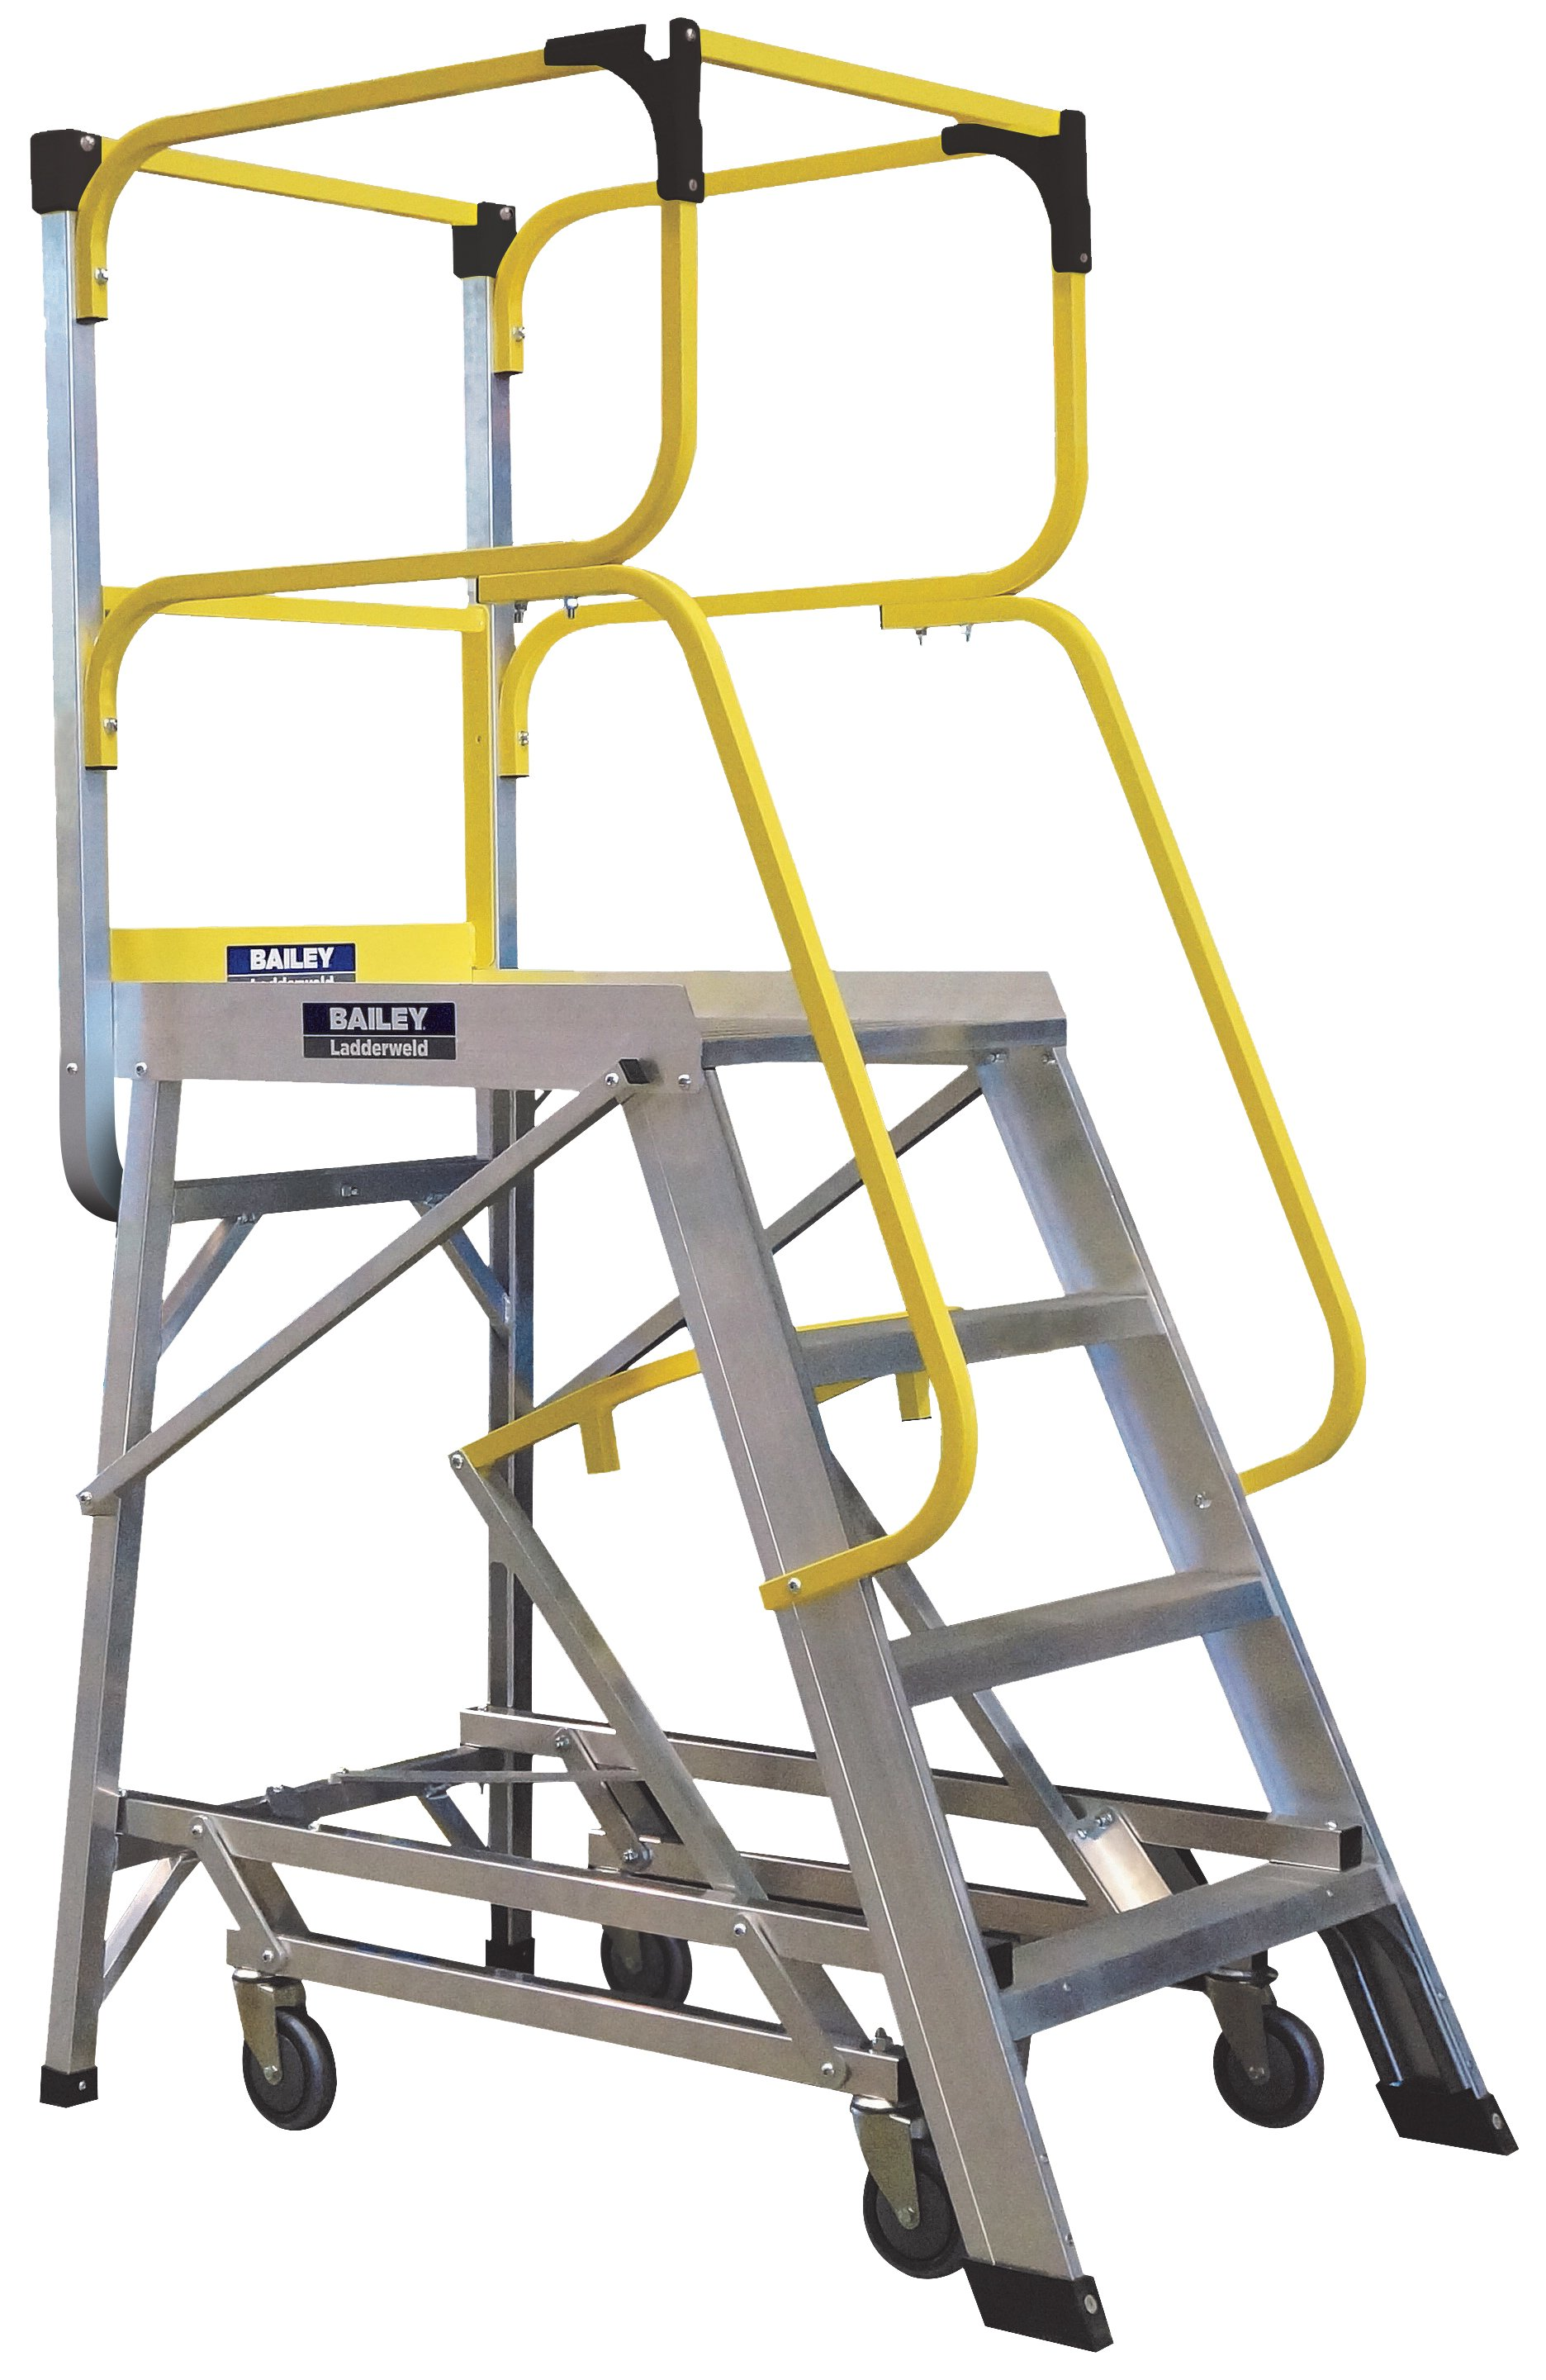 Order Picking Ladders